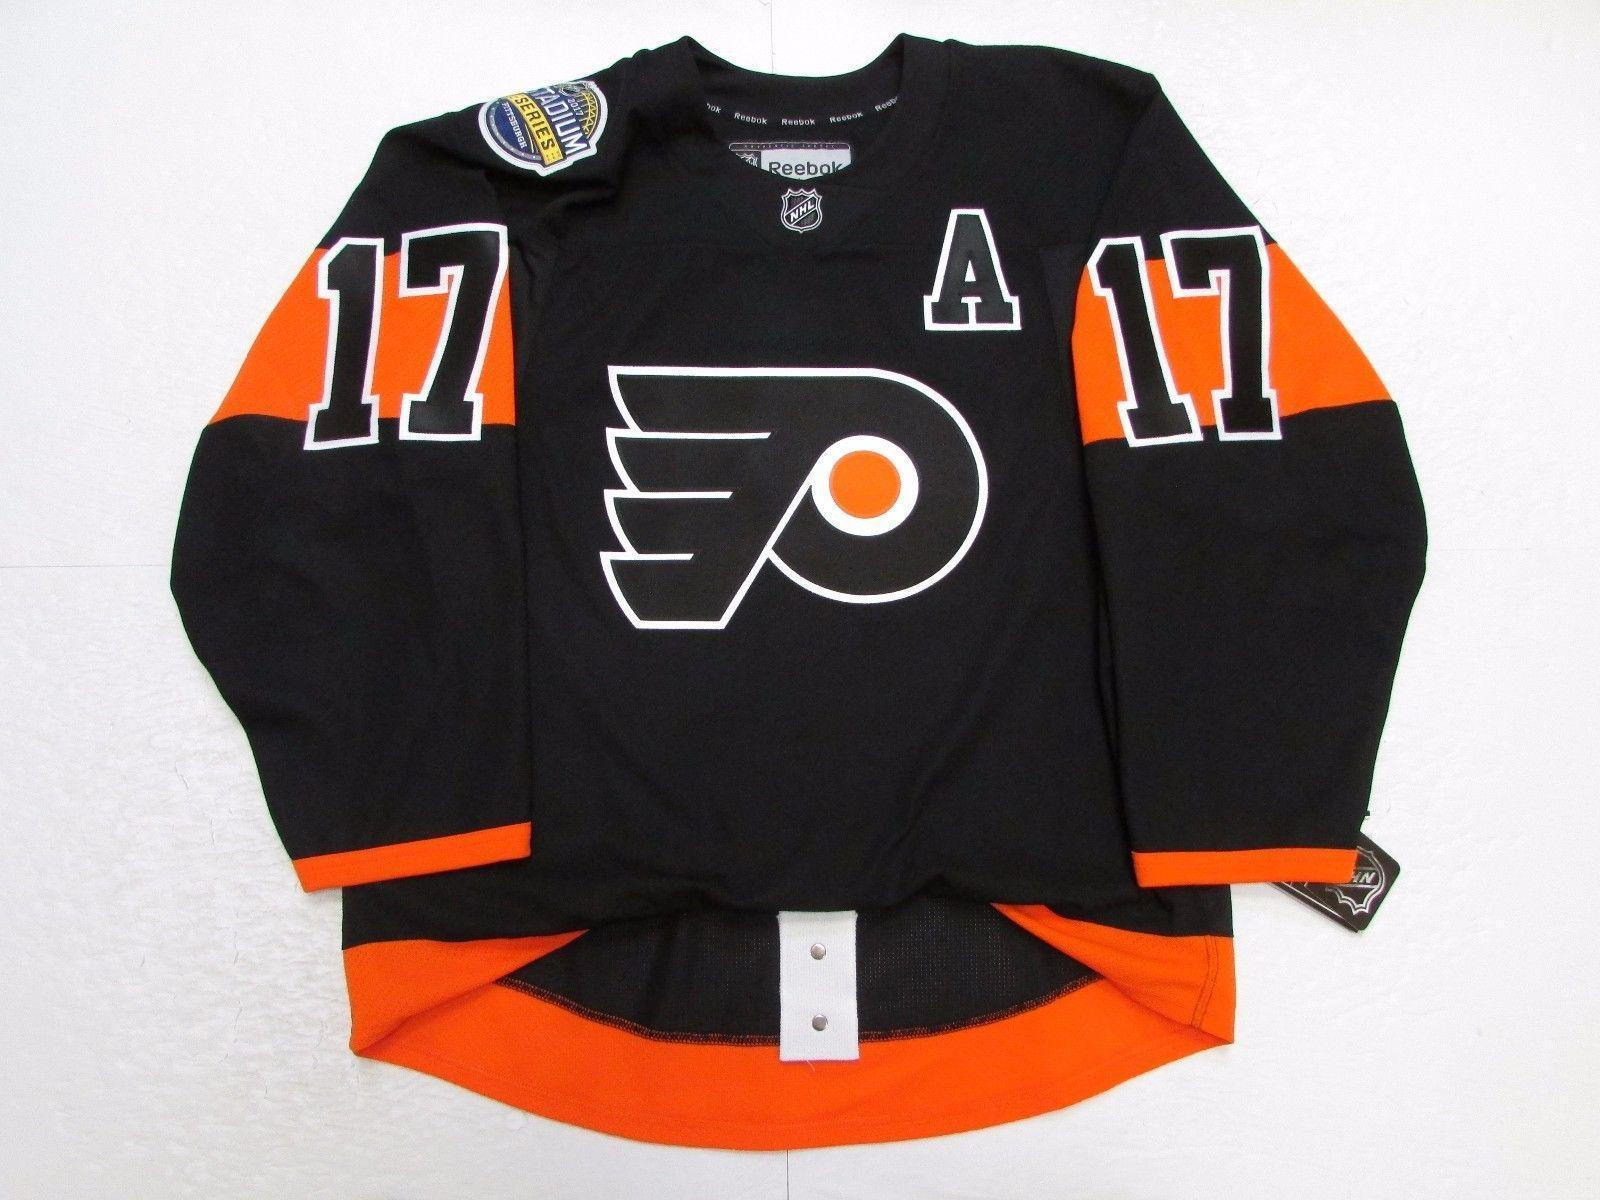 ae575bb1af8 ... authentic 2019 cheap custom simmonds philadelphia flyers 2017 stadium  series jersey stitch add any number any ...